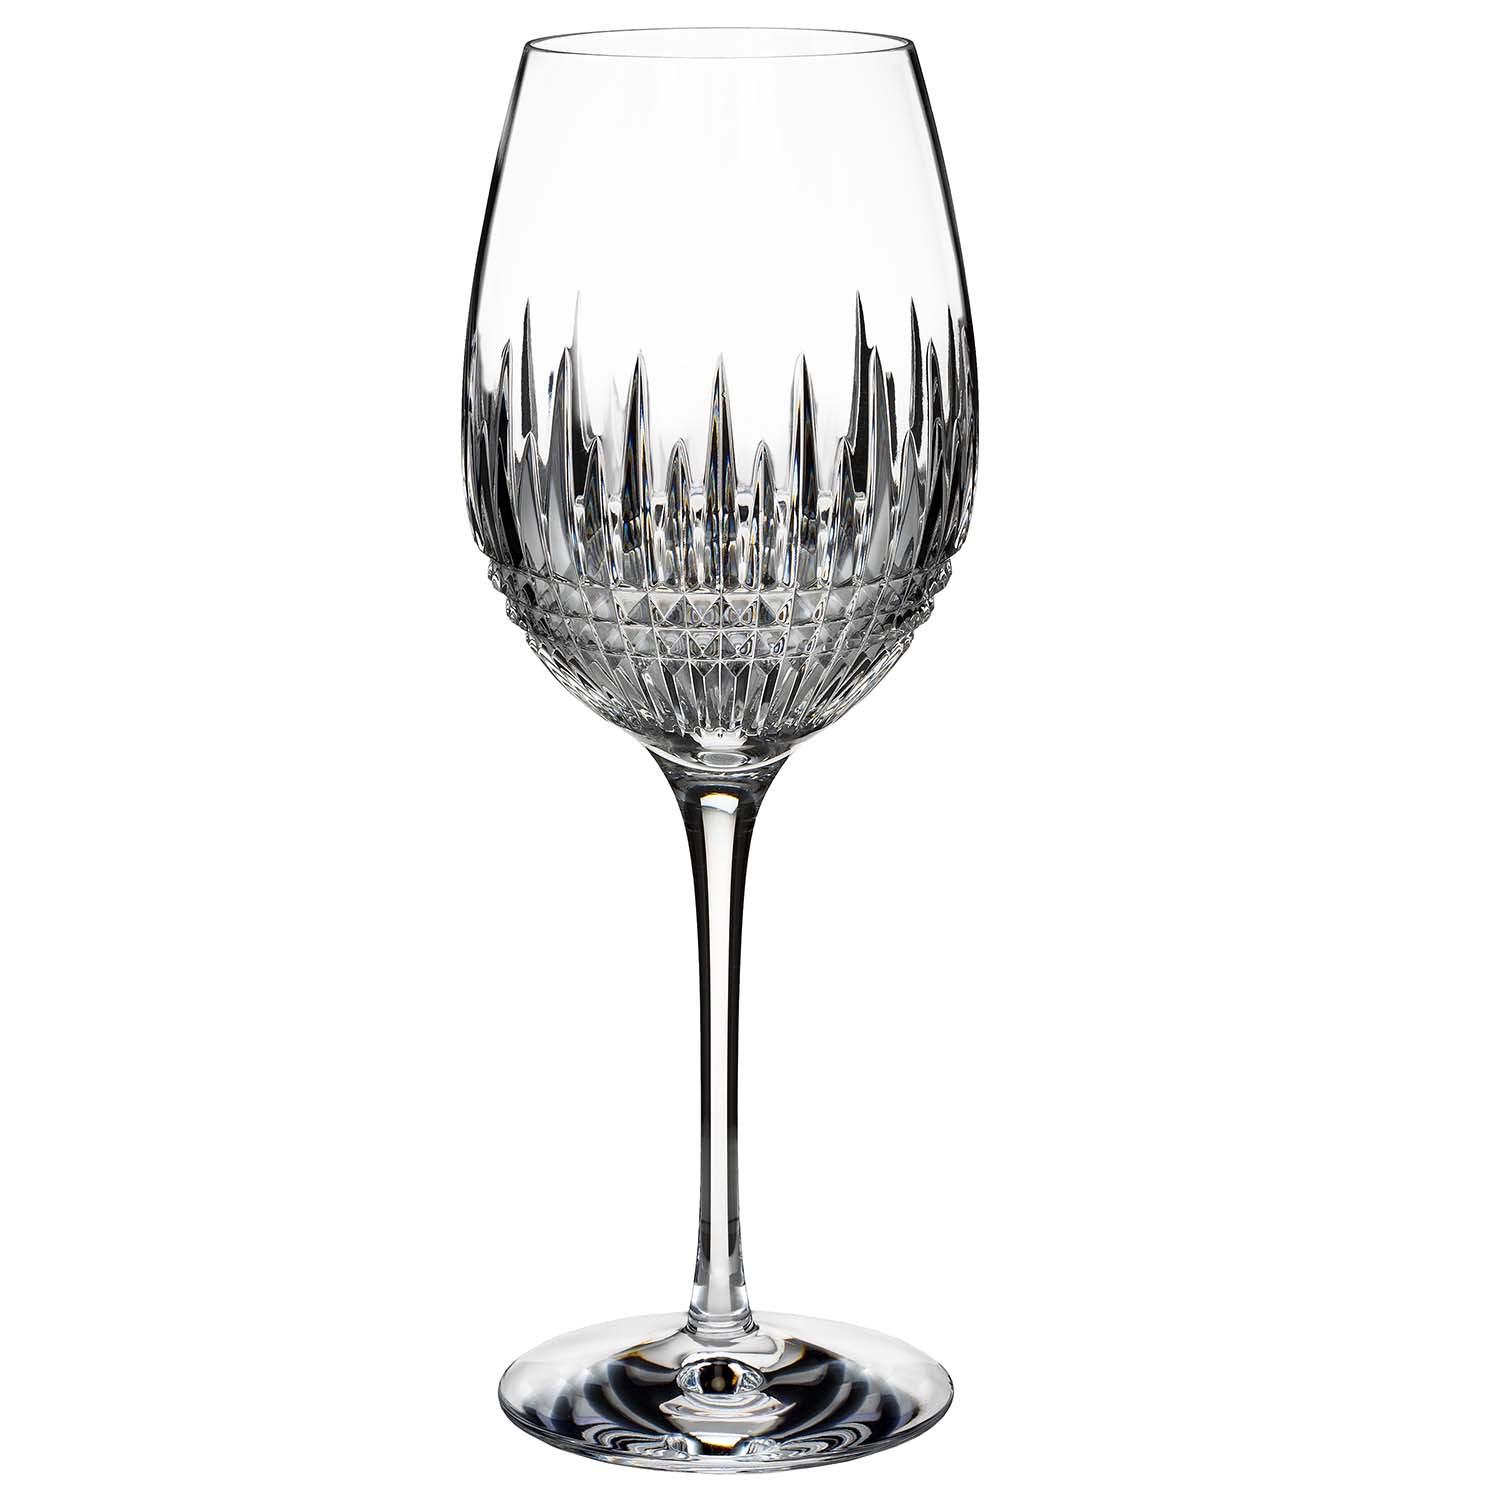 waterford lismore diamond vase of stem barware william ashley china for goblet 26 5 cm 560 ml a· waterford a· lismore diamond essence stemware